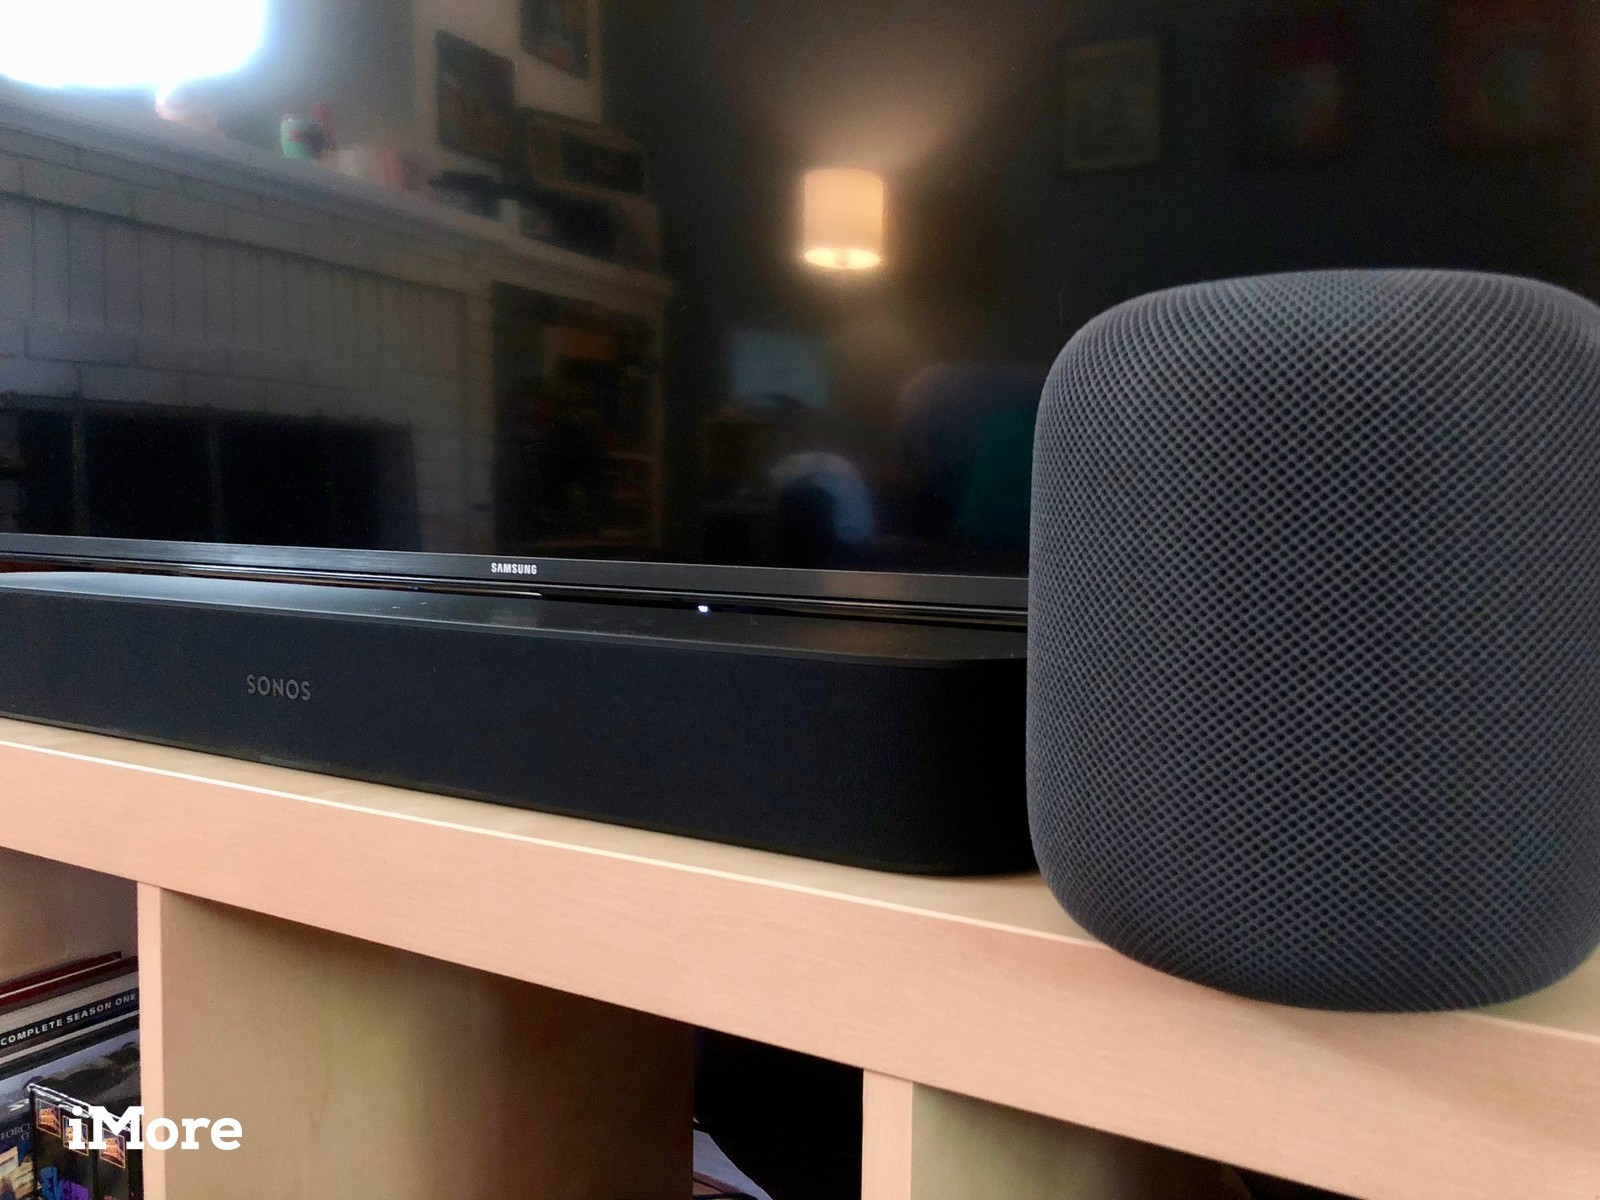 HomePod and Sonos, together at last